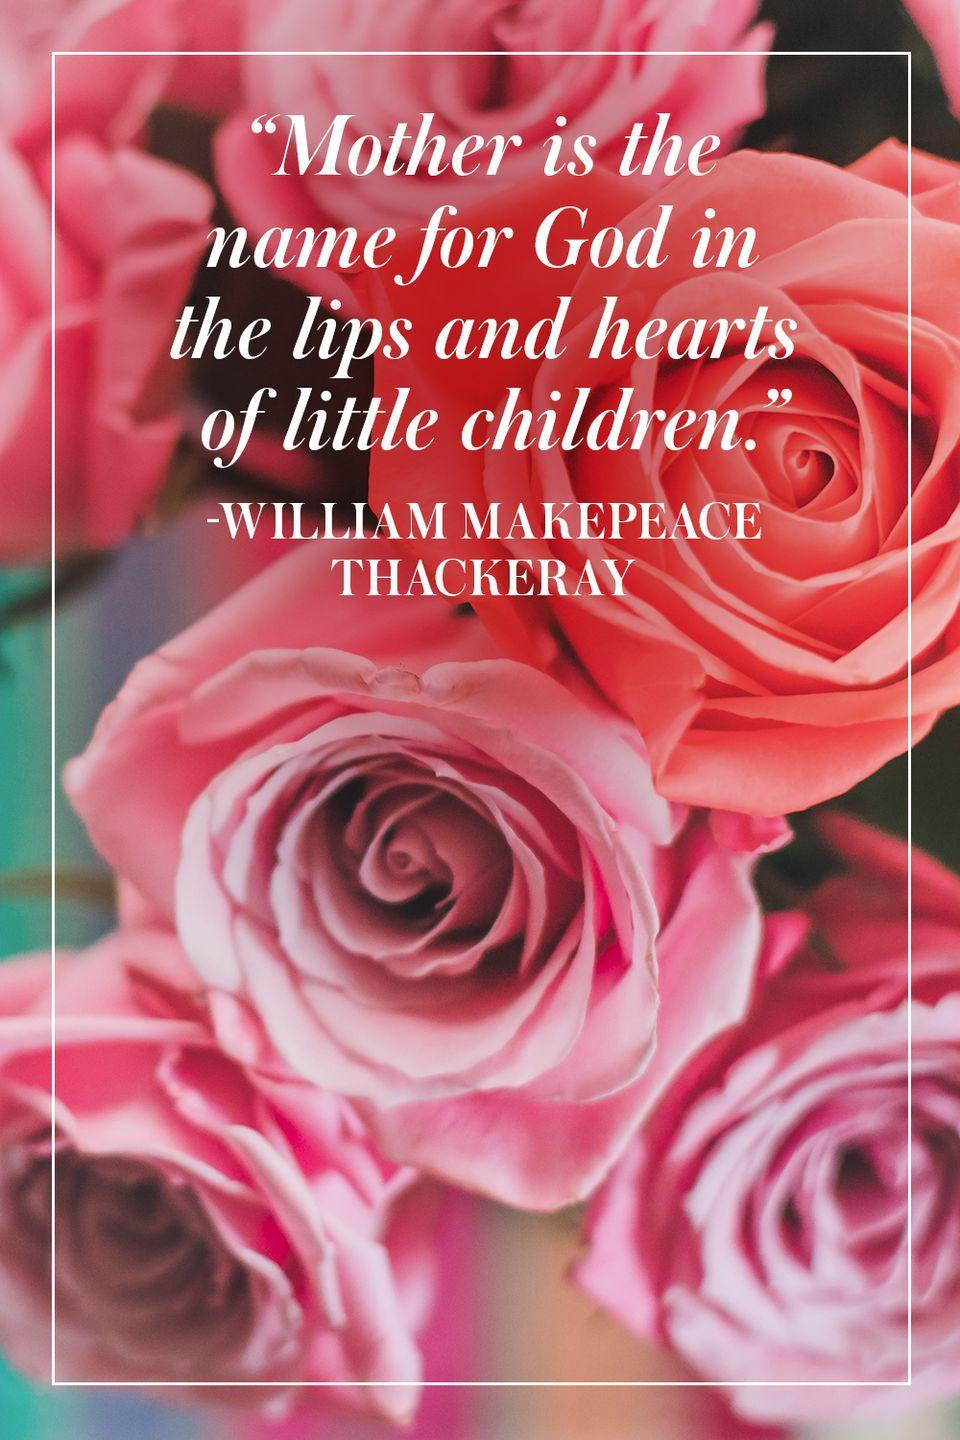 """<p>""""Mother is the name for God in the lips and hearts of little children.""""</p><p>-William Makepeace Thackeray</p>"""